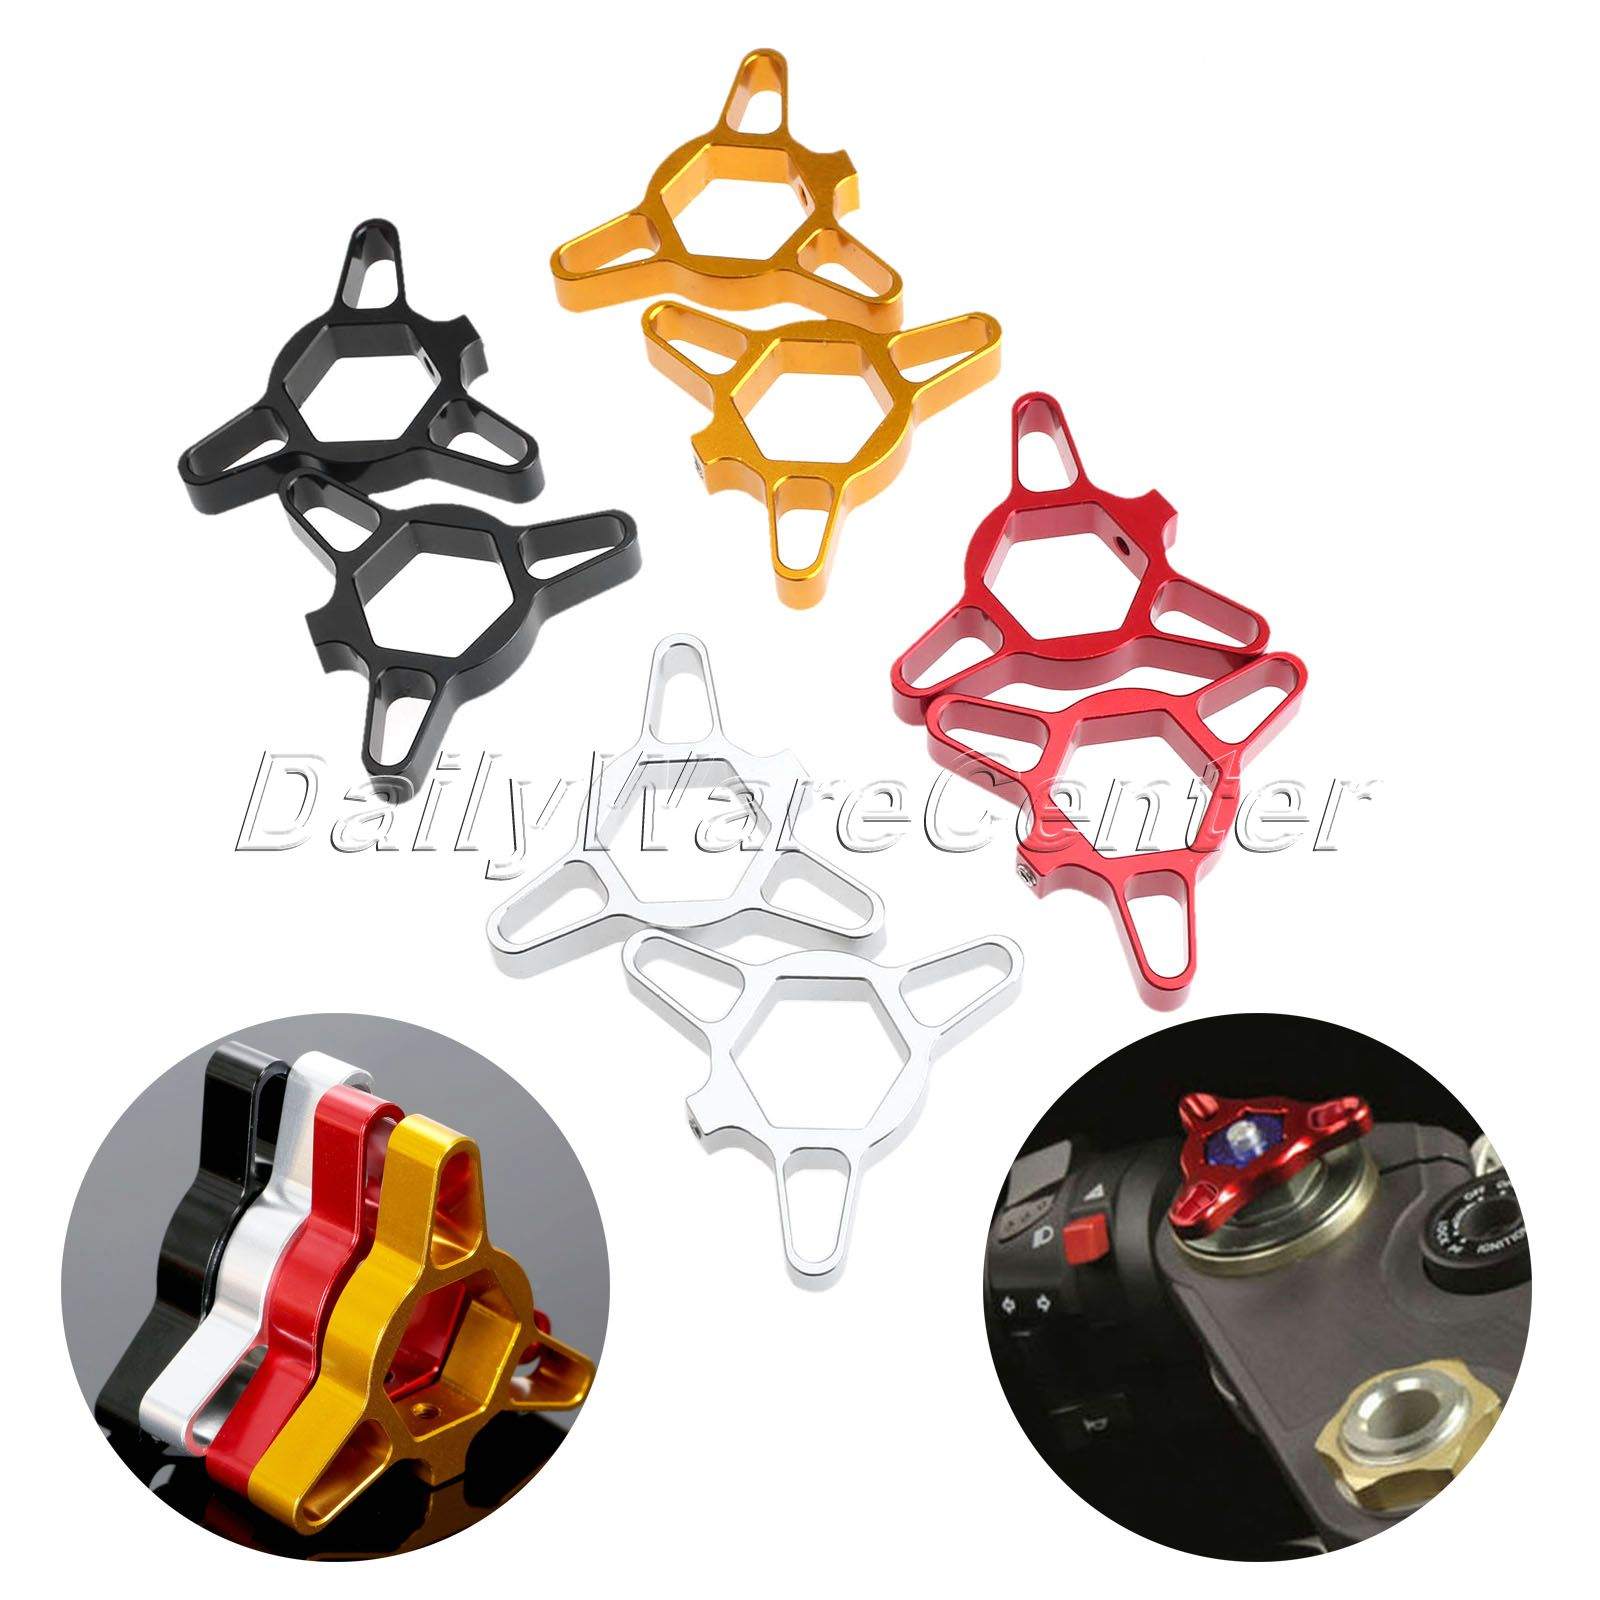 Mgoodoo 2Pc 17mm Motorcycle CNC Fork Preload Adjusters For Ducati 1198 1098 Streetfighter 696 Monster Honda CBR125 Yamaha YZF R6